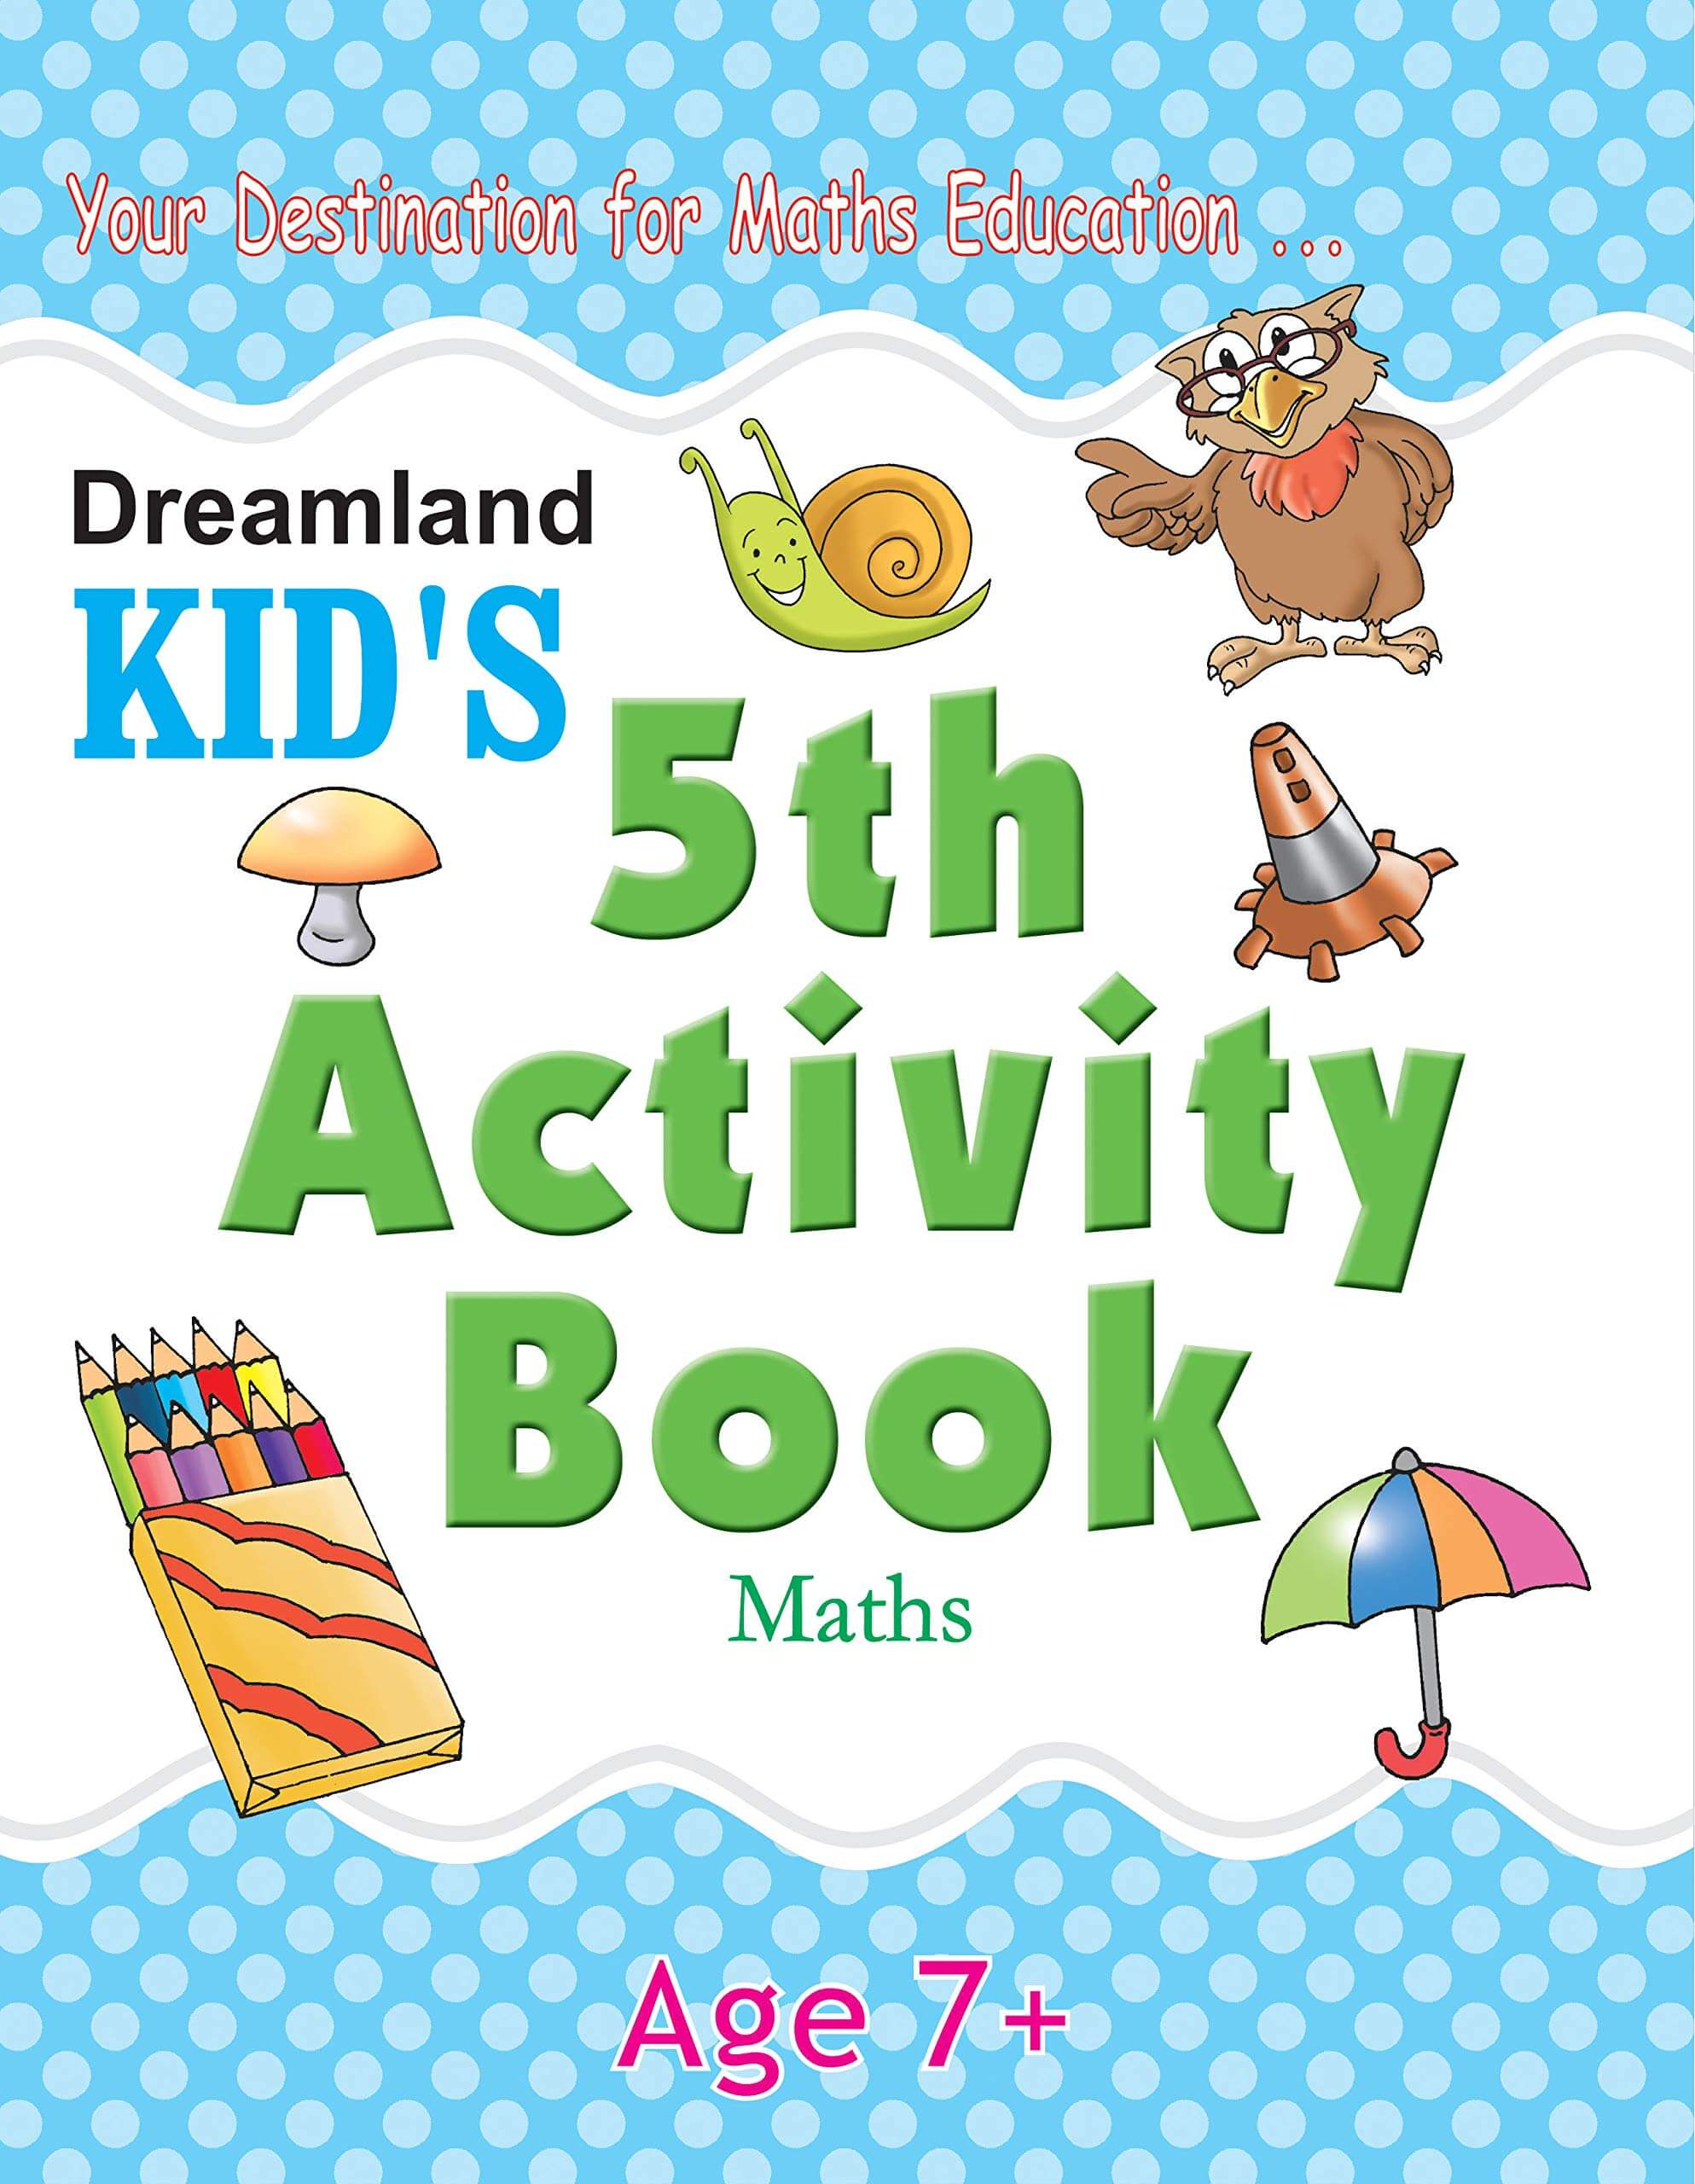 5th Activity Book - Maths